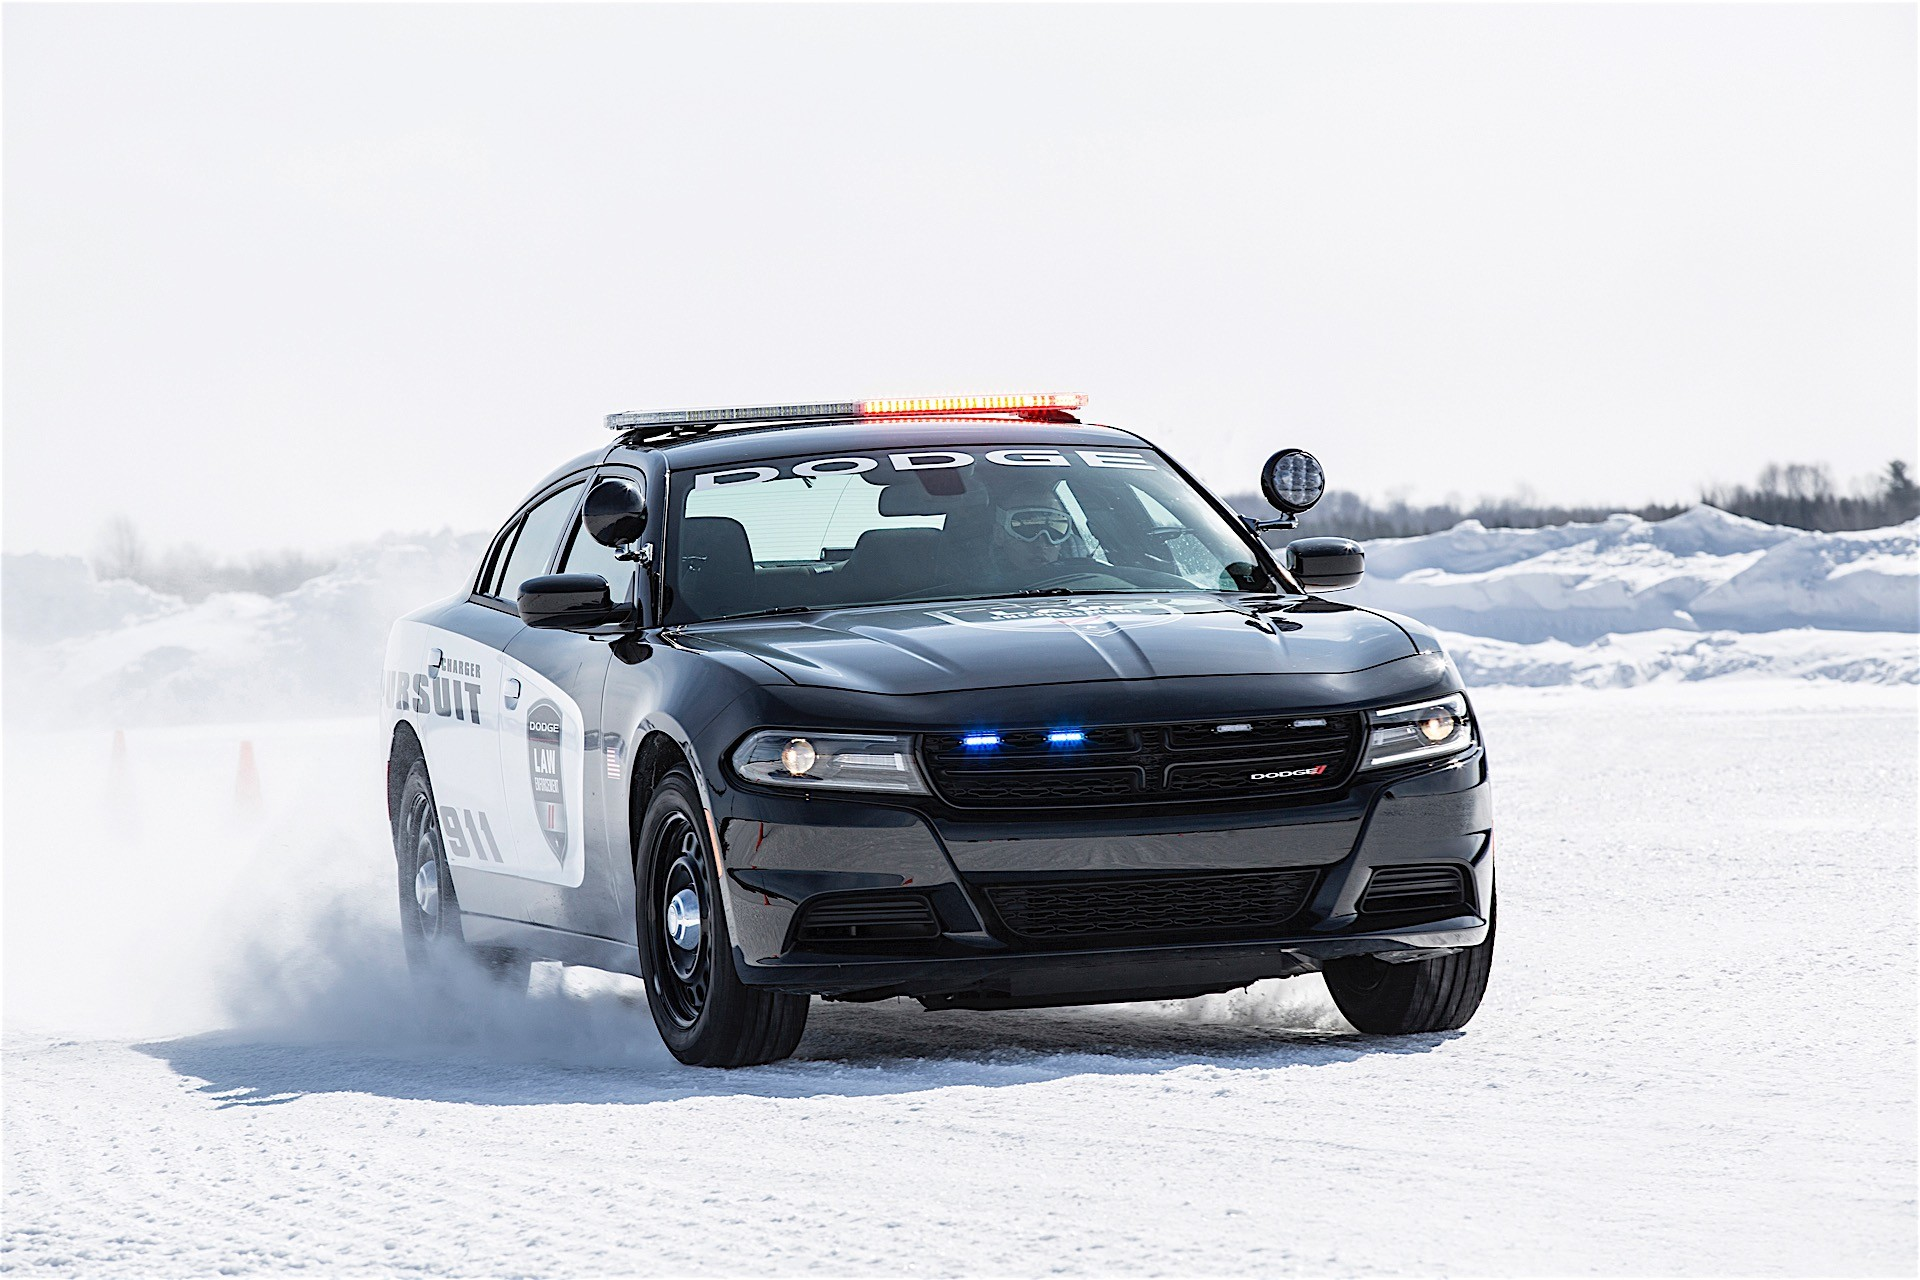 Dodge Updates 2017 Charger Pursuit With Complimentary Officer Protection Package - autoevolution